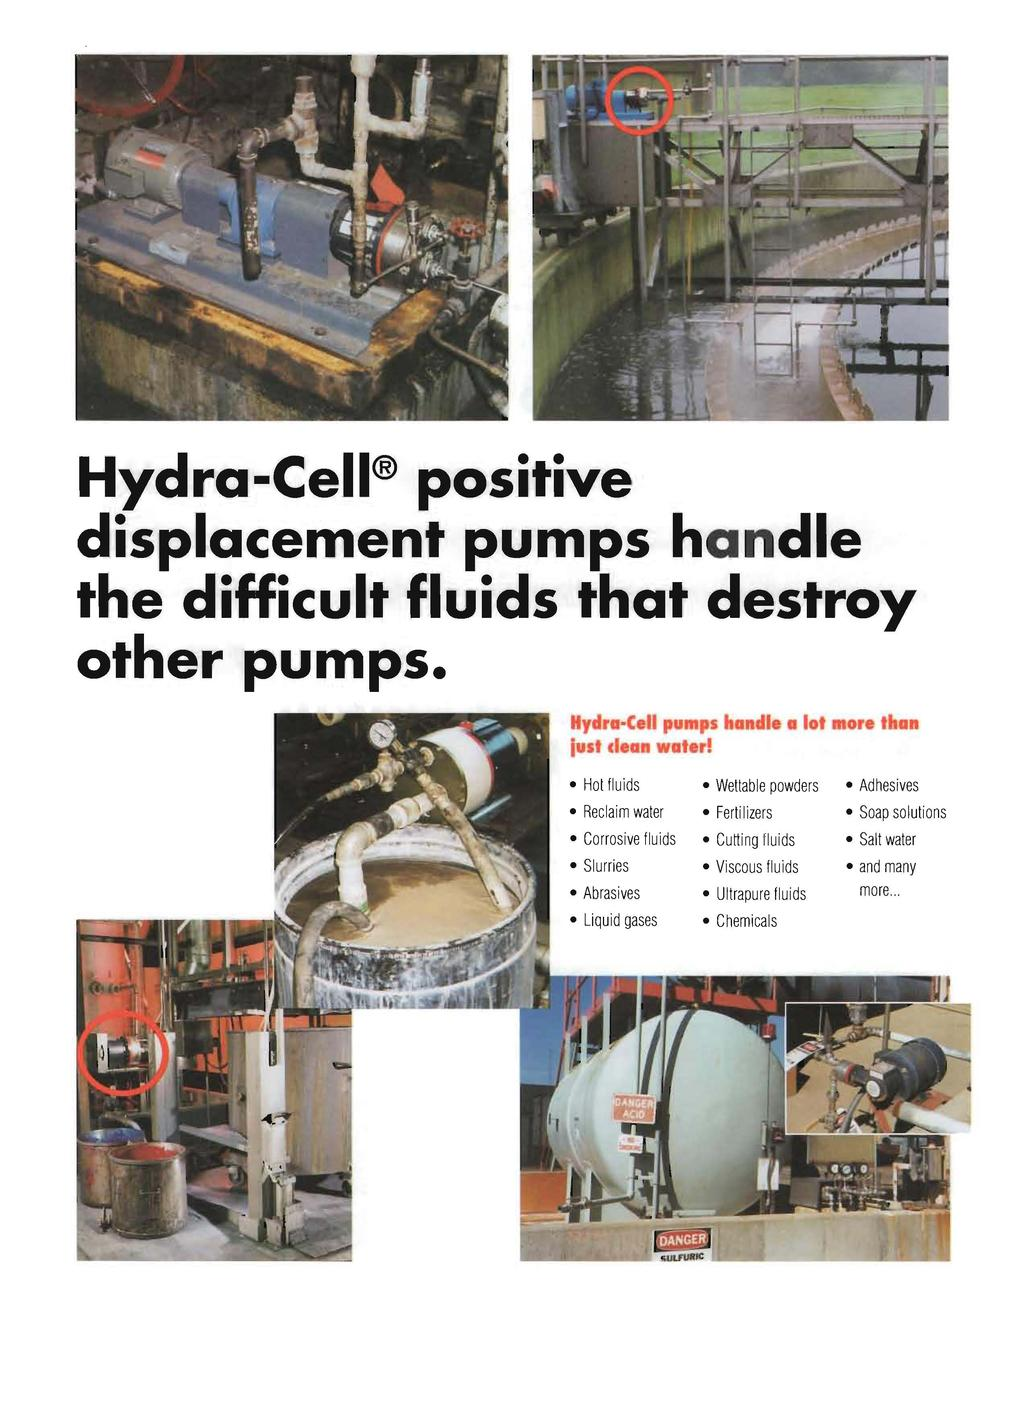 Hydra-Cell positive displacemen-t pumps handle the difficult fluids that destroy other pumps. Hydra-Cell pumps ha die a lot lust dea water!